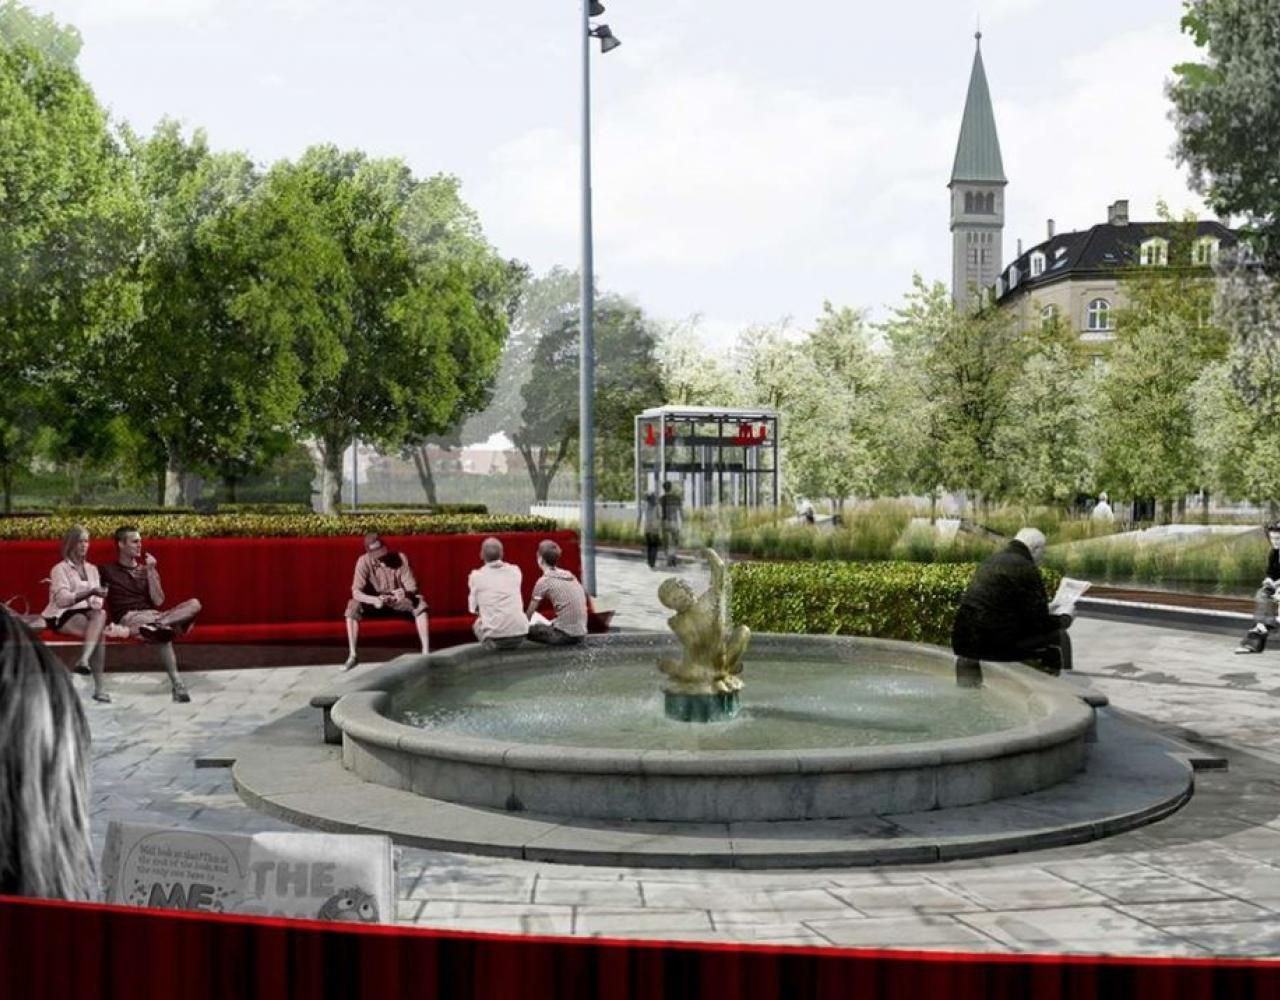 enghave plads 2019